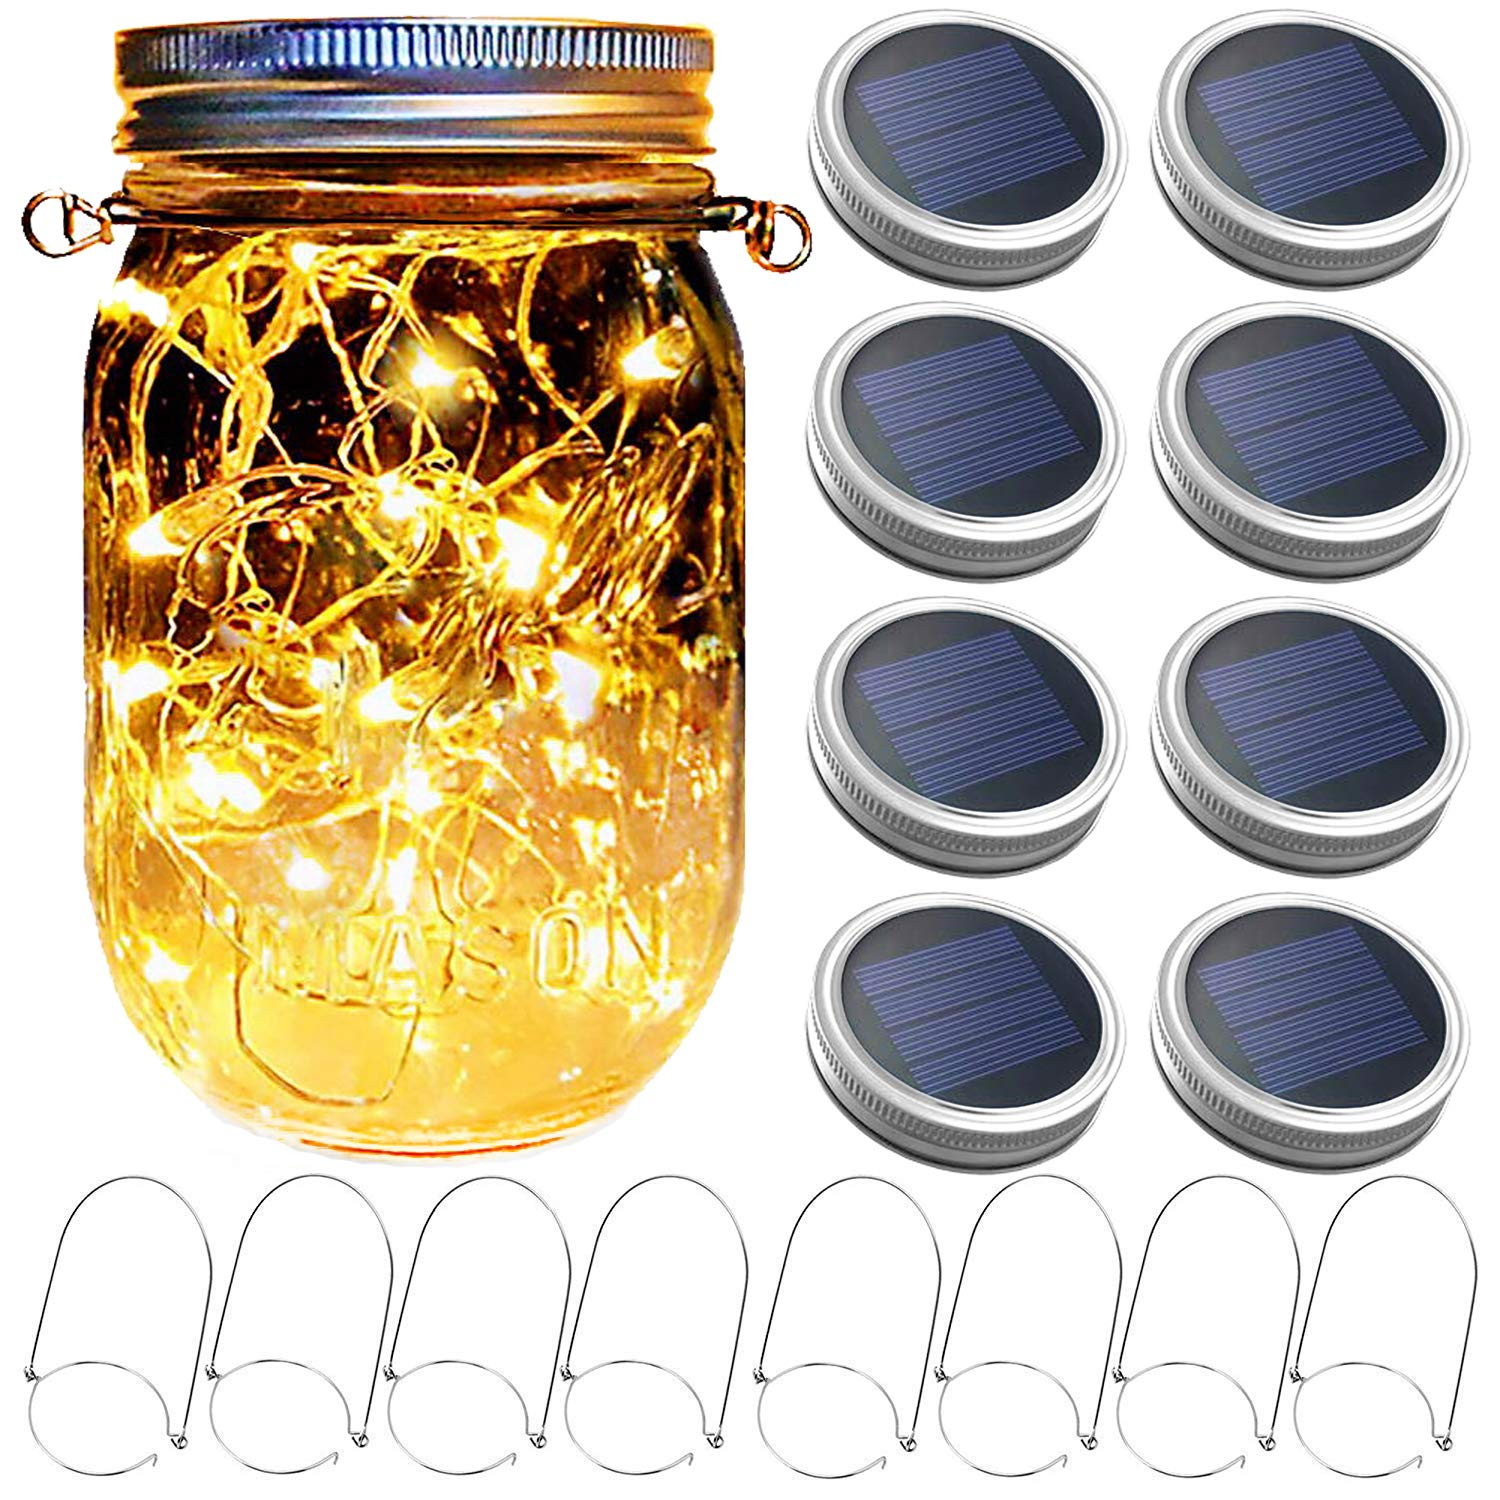 Mason Jar Solar Lantern Lights, 8 Pack 30 LED Bulbs Fairy Star Firefly Solar Lids Jar Lights,8 Hangers Included(No Jars),for Patio Garden Mason Jar Lanterns Table Wedding Decorations Lights by Yitee